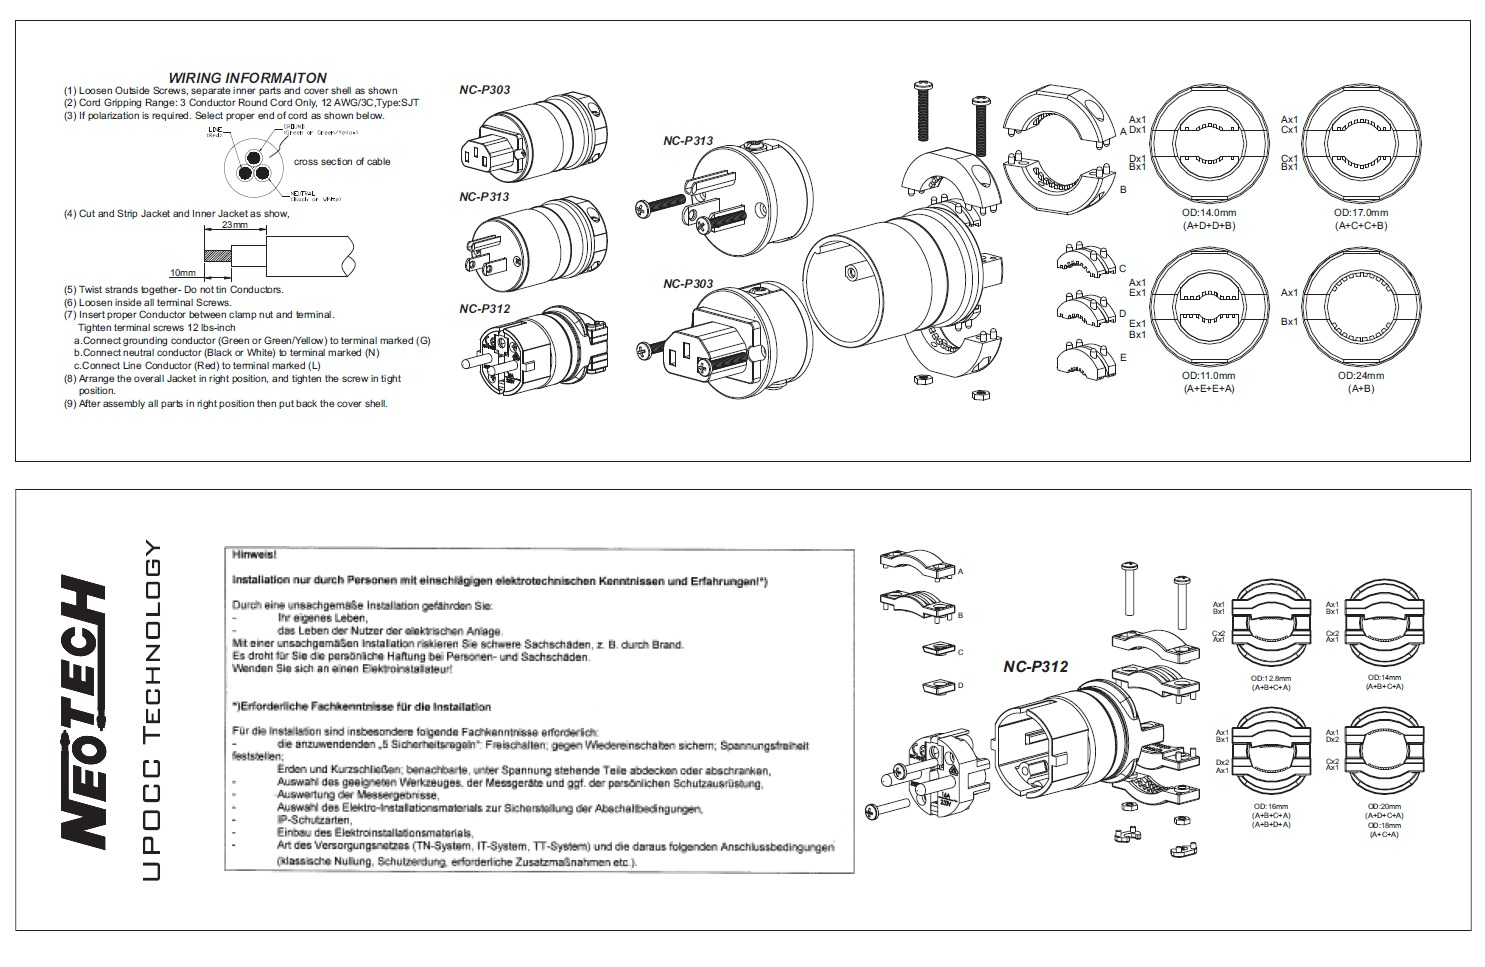 neotech nc p303 wiring diagram neotech nc p303, up occ copper iec plug, gold plated hifi collective iec plug wiring diagram at honlapkeszites.co